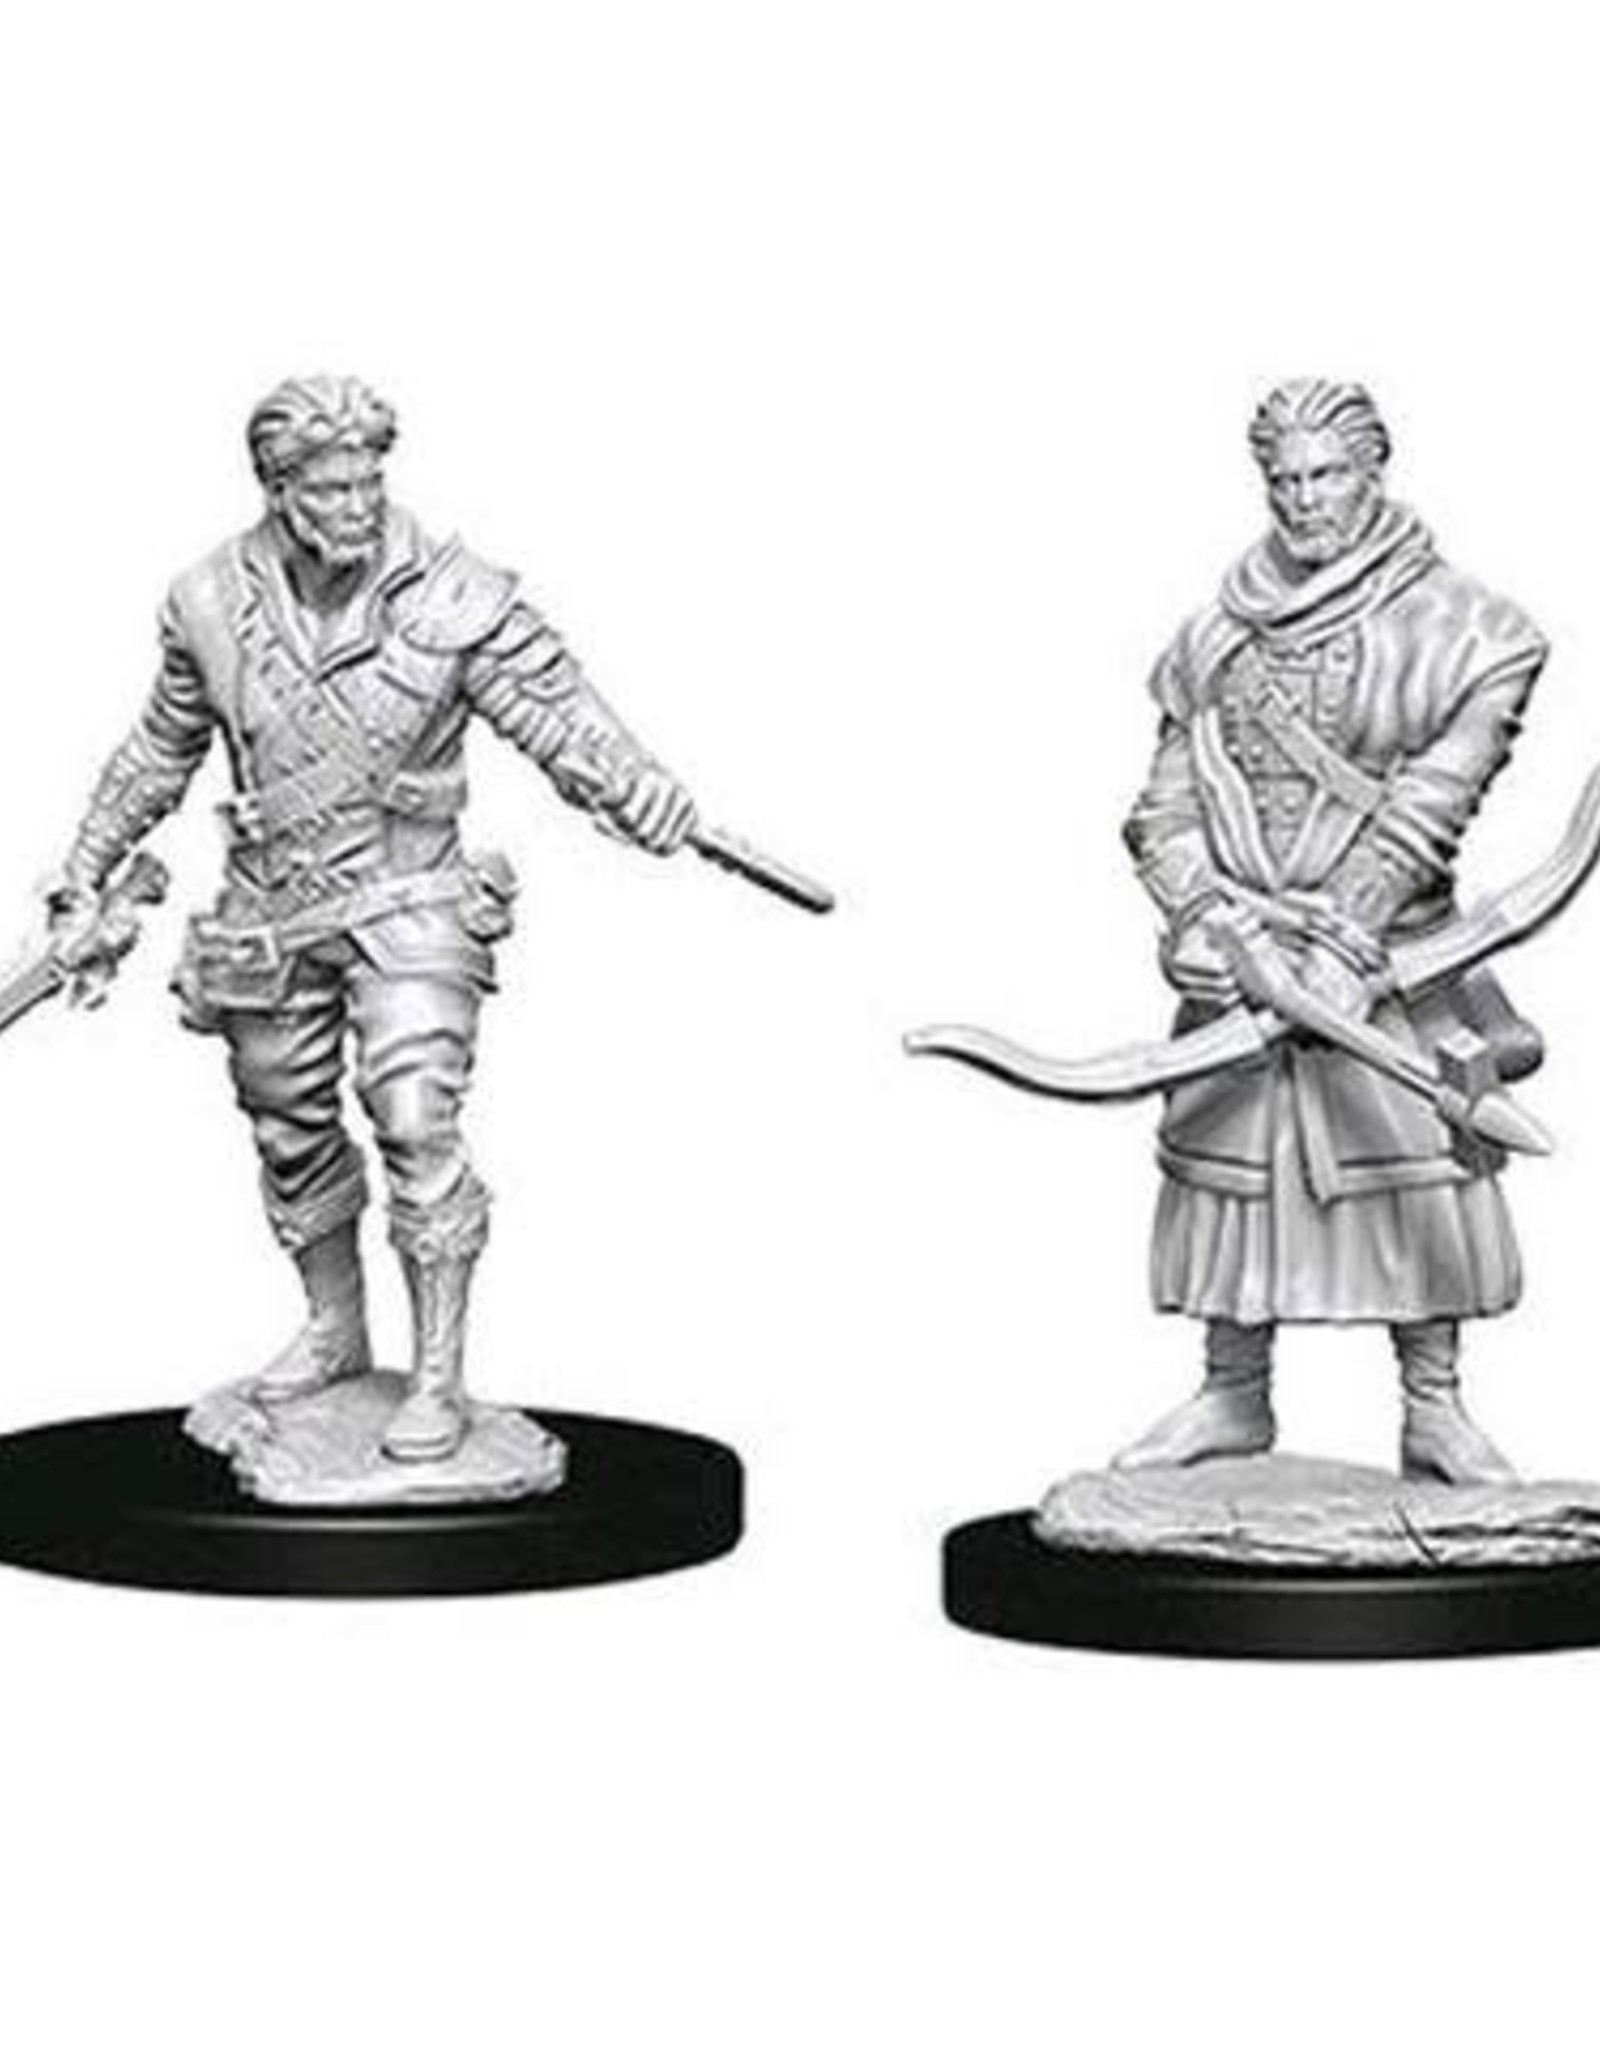 WizKids Dungeons & Dragons Nolzur's Marvelous Miniatures: Male Human Rogue